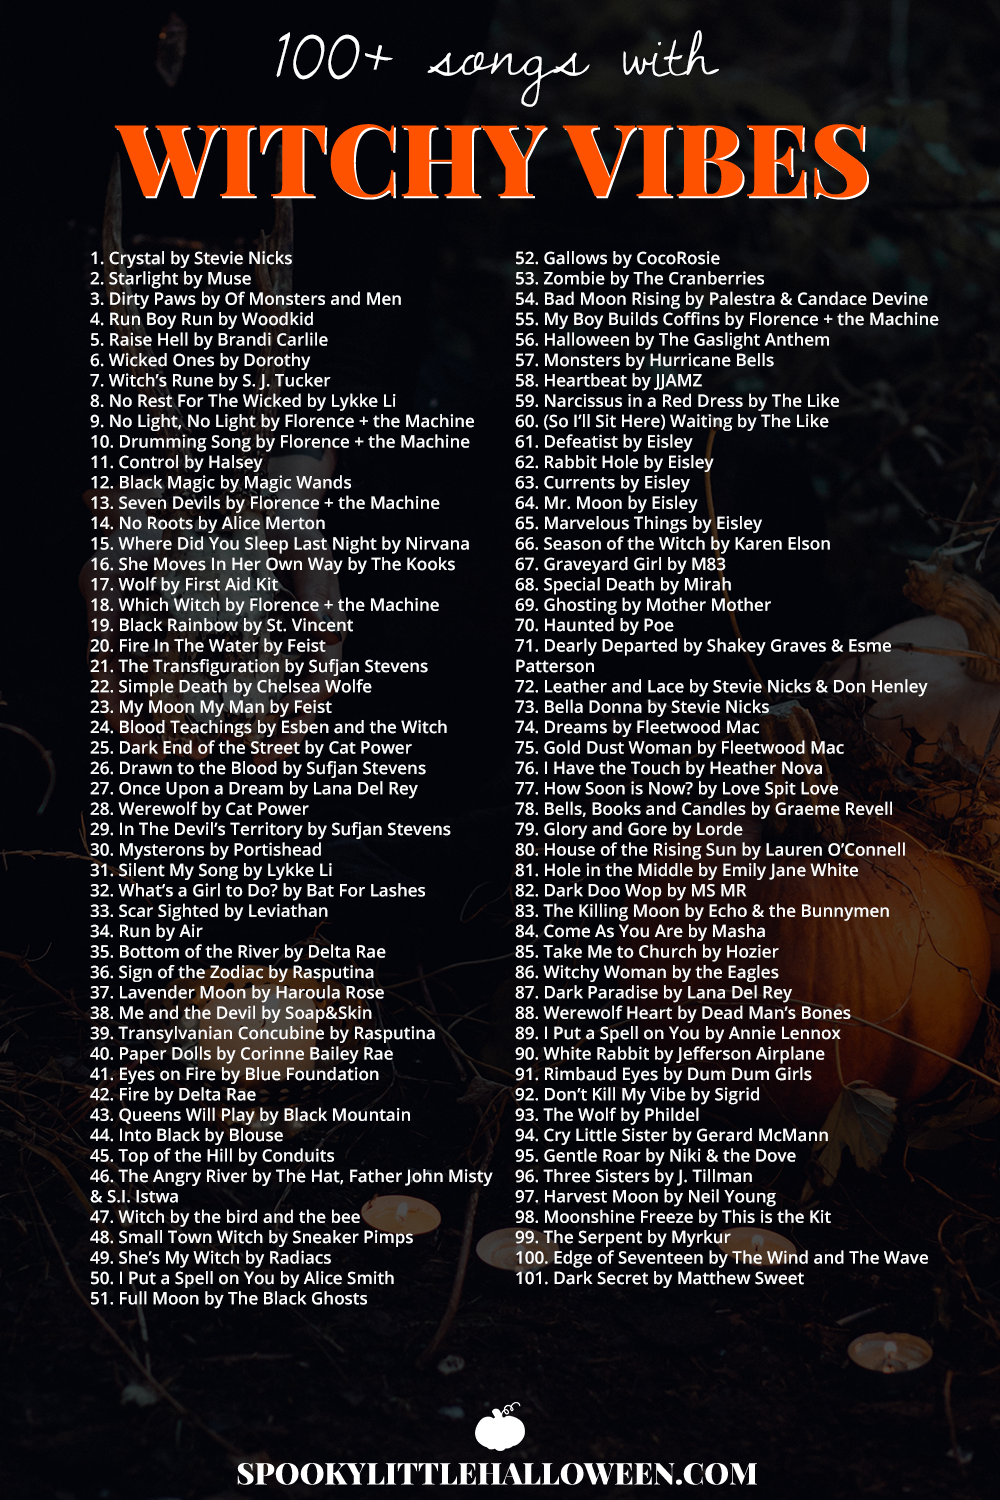 Halloween Music Playlist.My Favorite Songs With Witchy Vibes Spooky Little Halloween